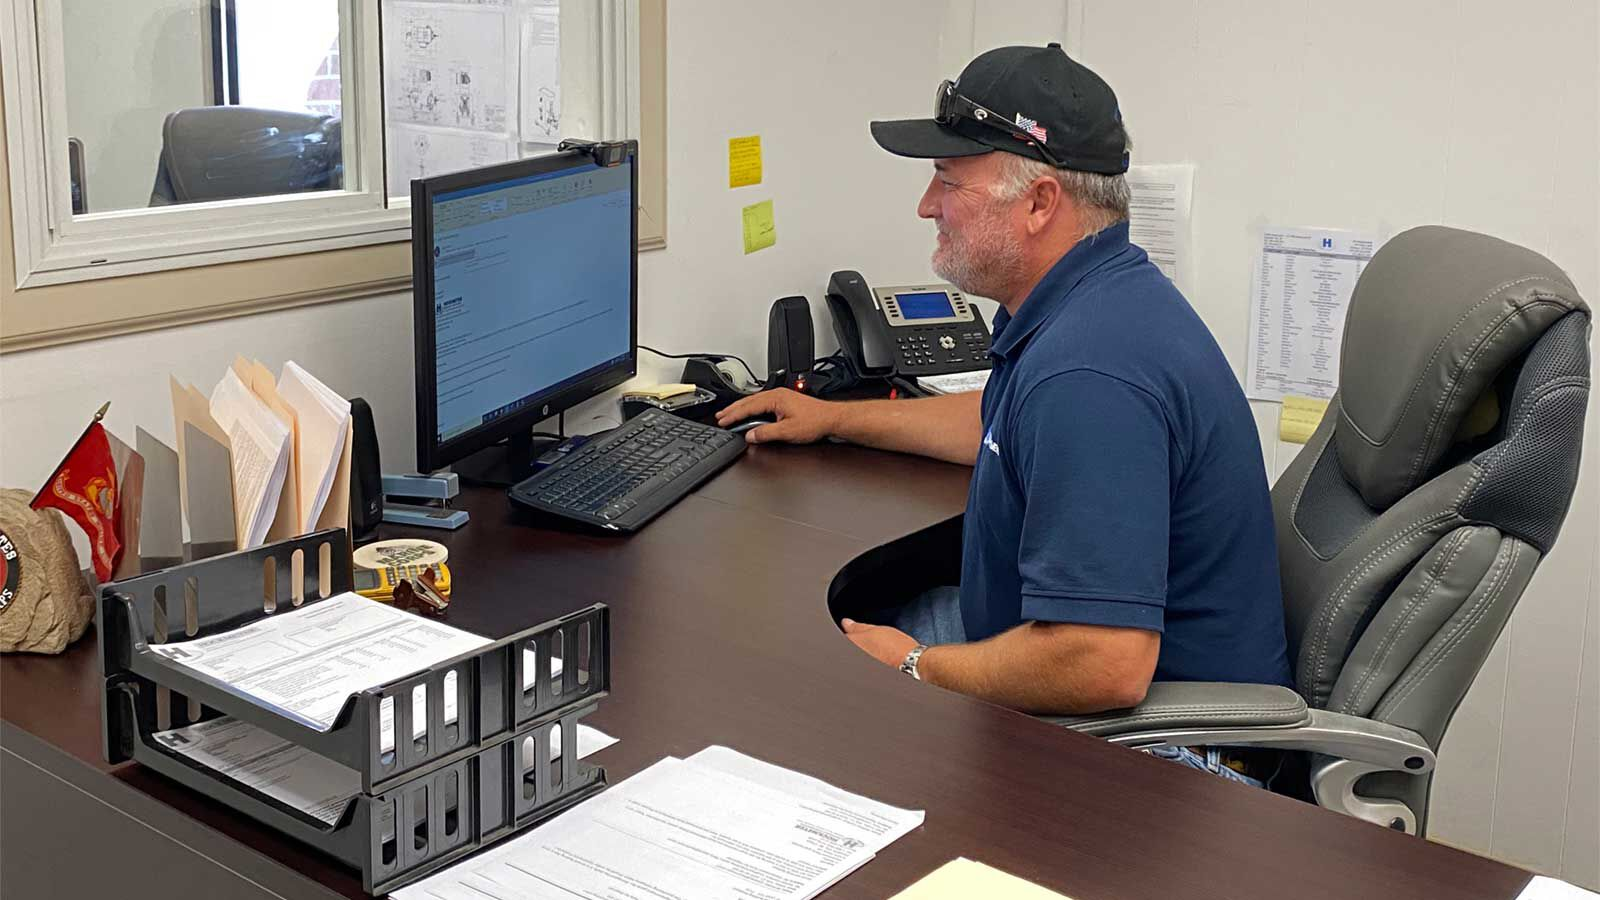 A Parts & Service employee answering emails from a client of Hockmeyer Equipment Corporation